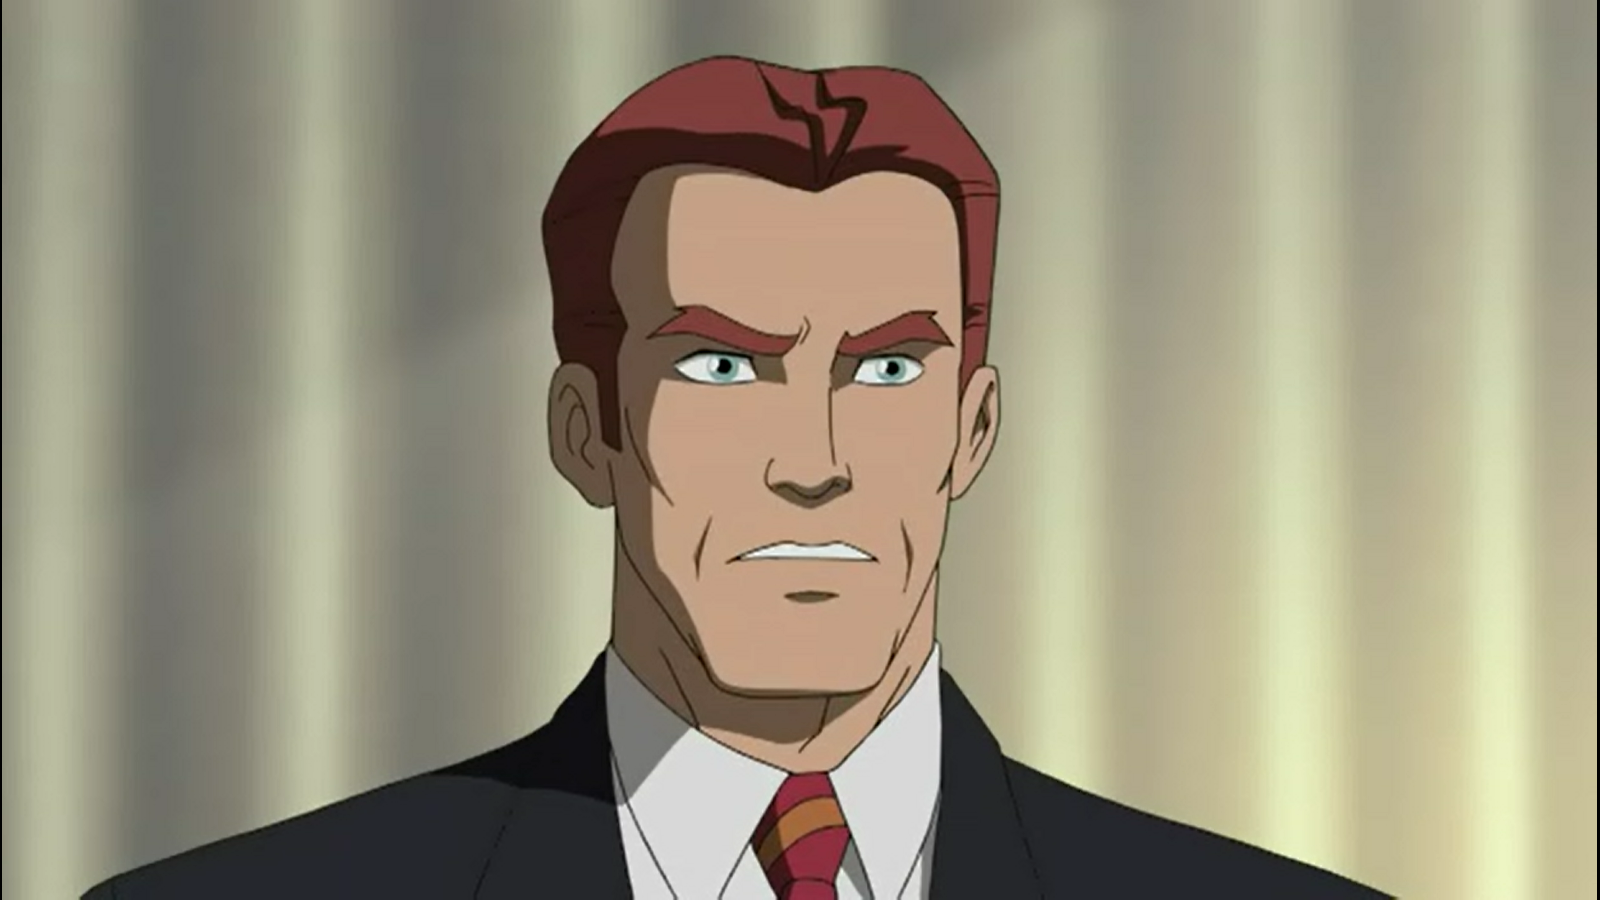 Image Norman_Osborn - Spectacular Spider-Man.png